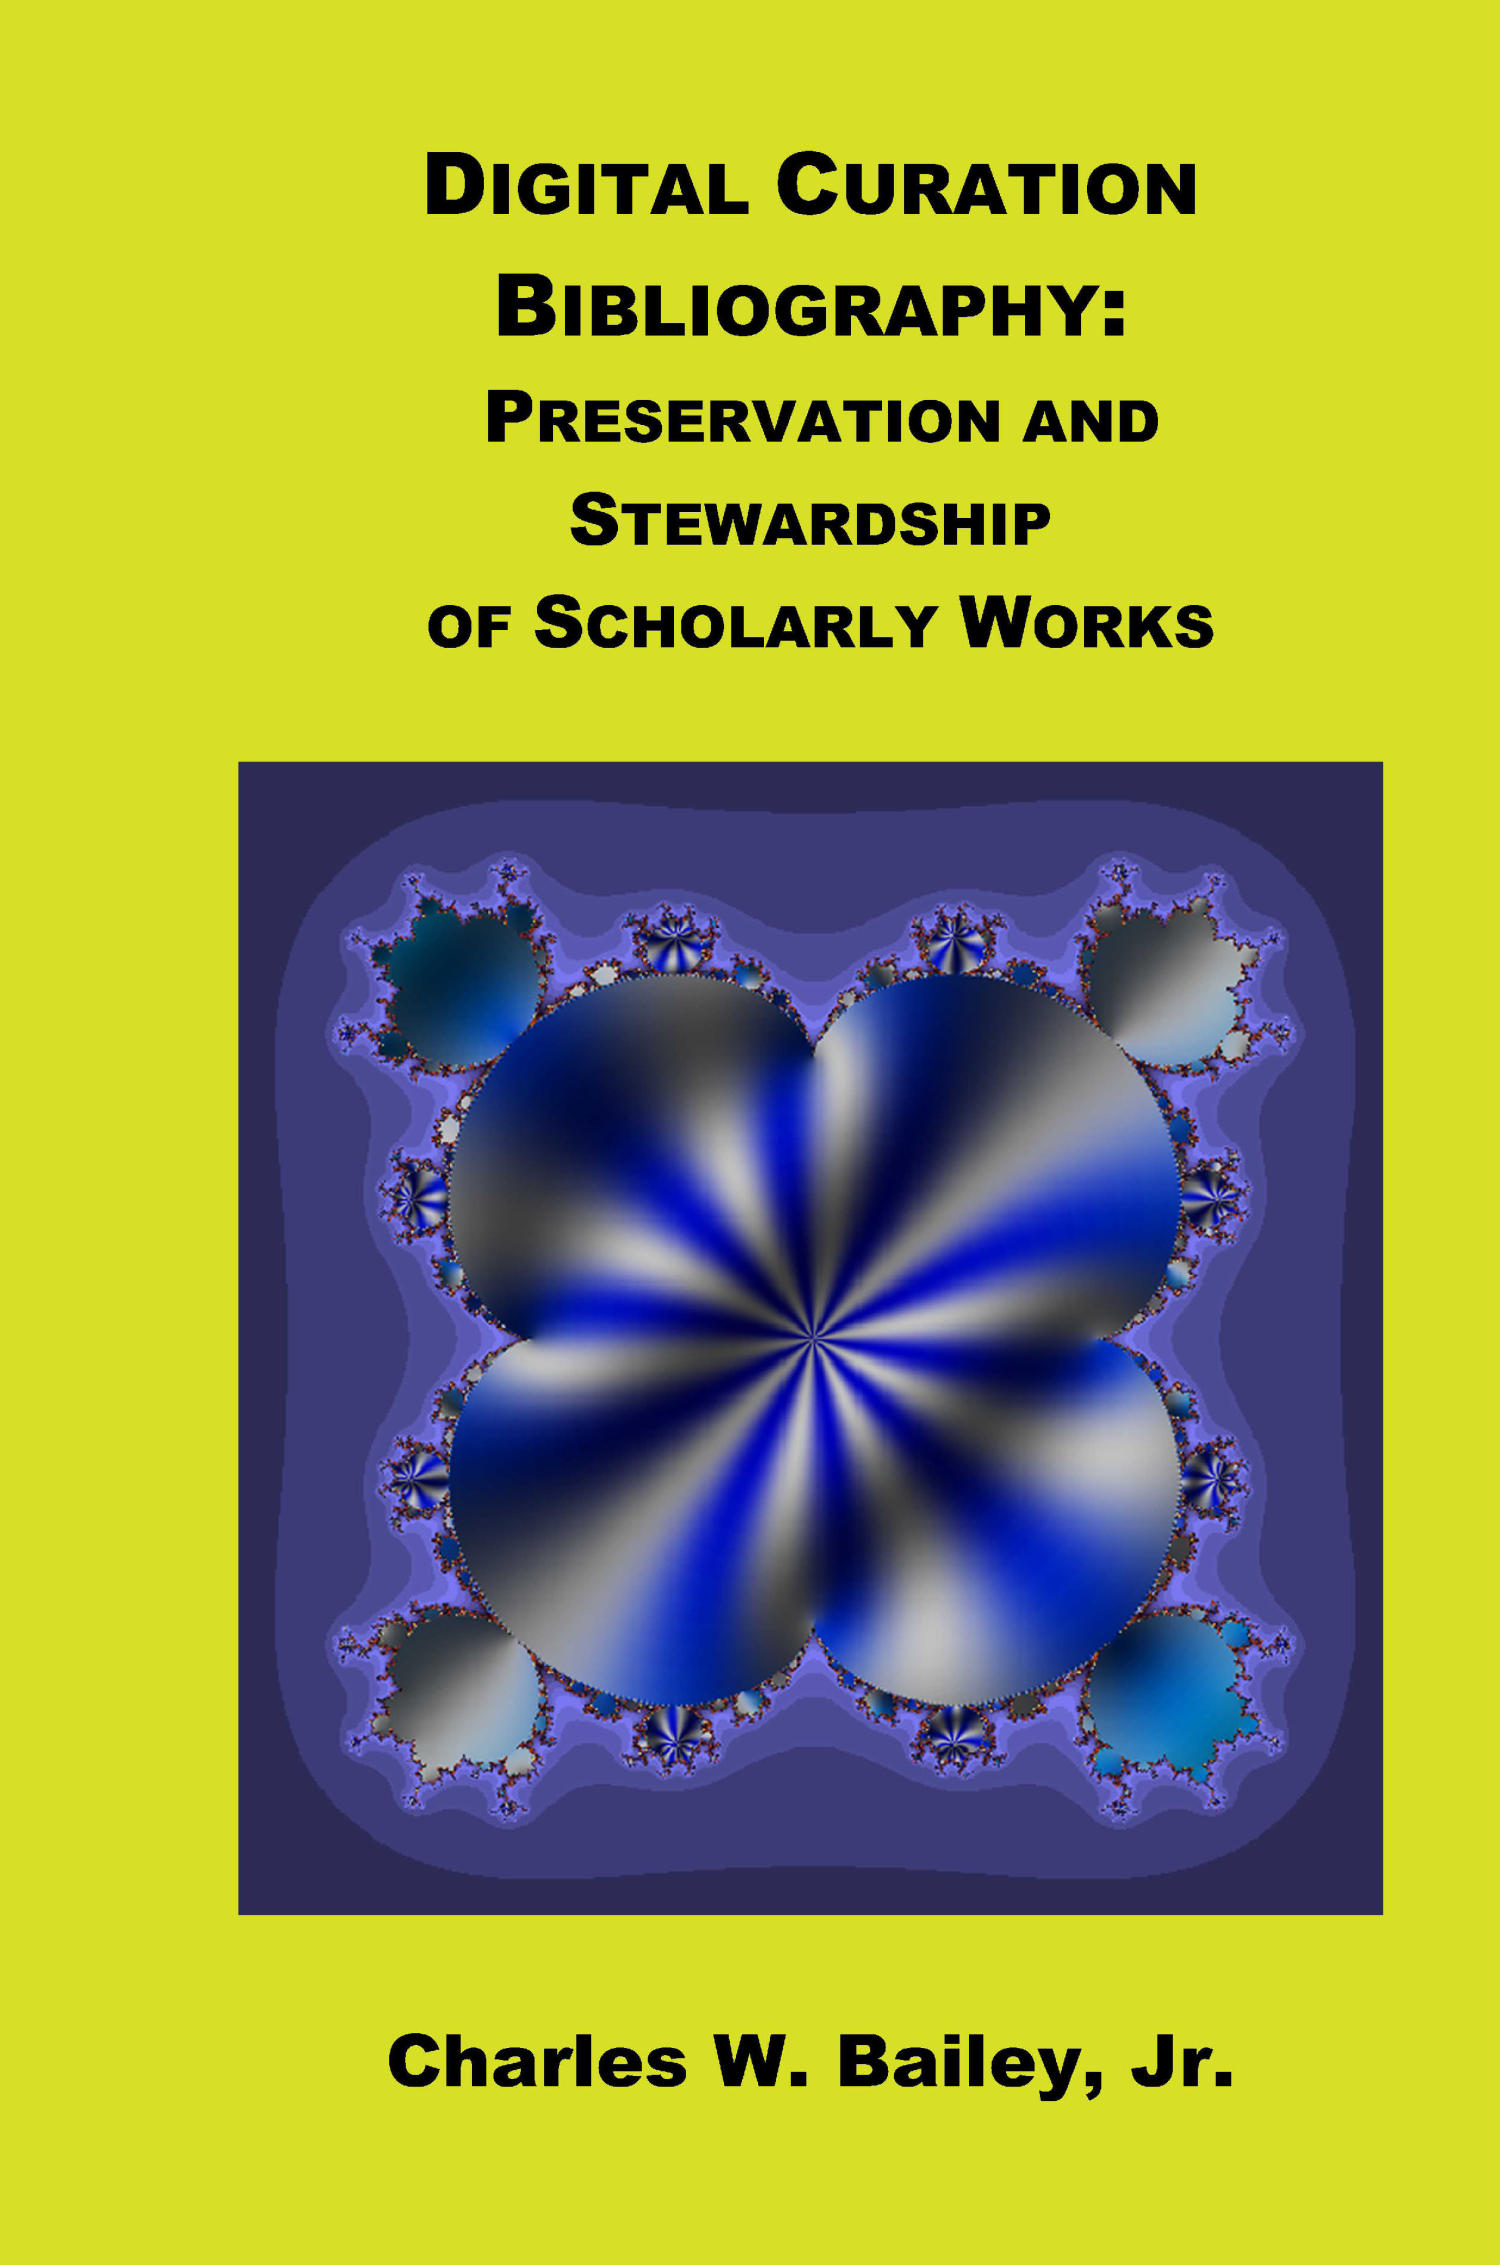 Digital Curation Bibliography: Preservation and Stewardship of Scholarly Works                                                                                                      Front Cover